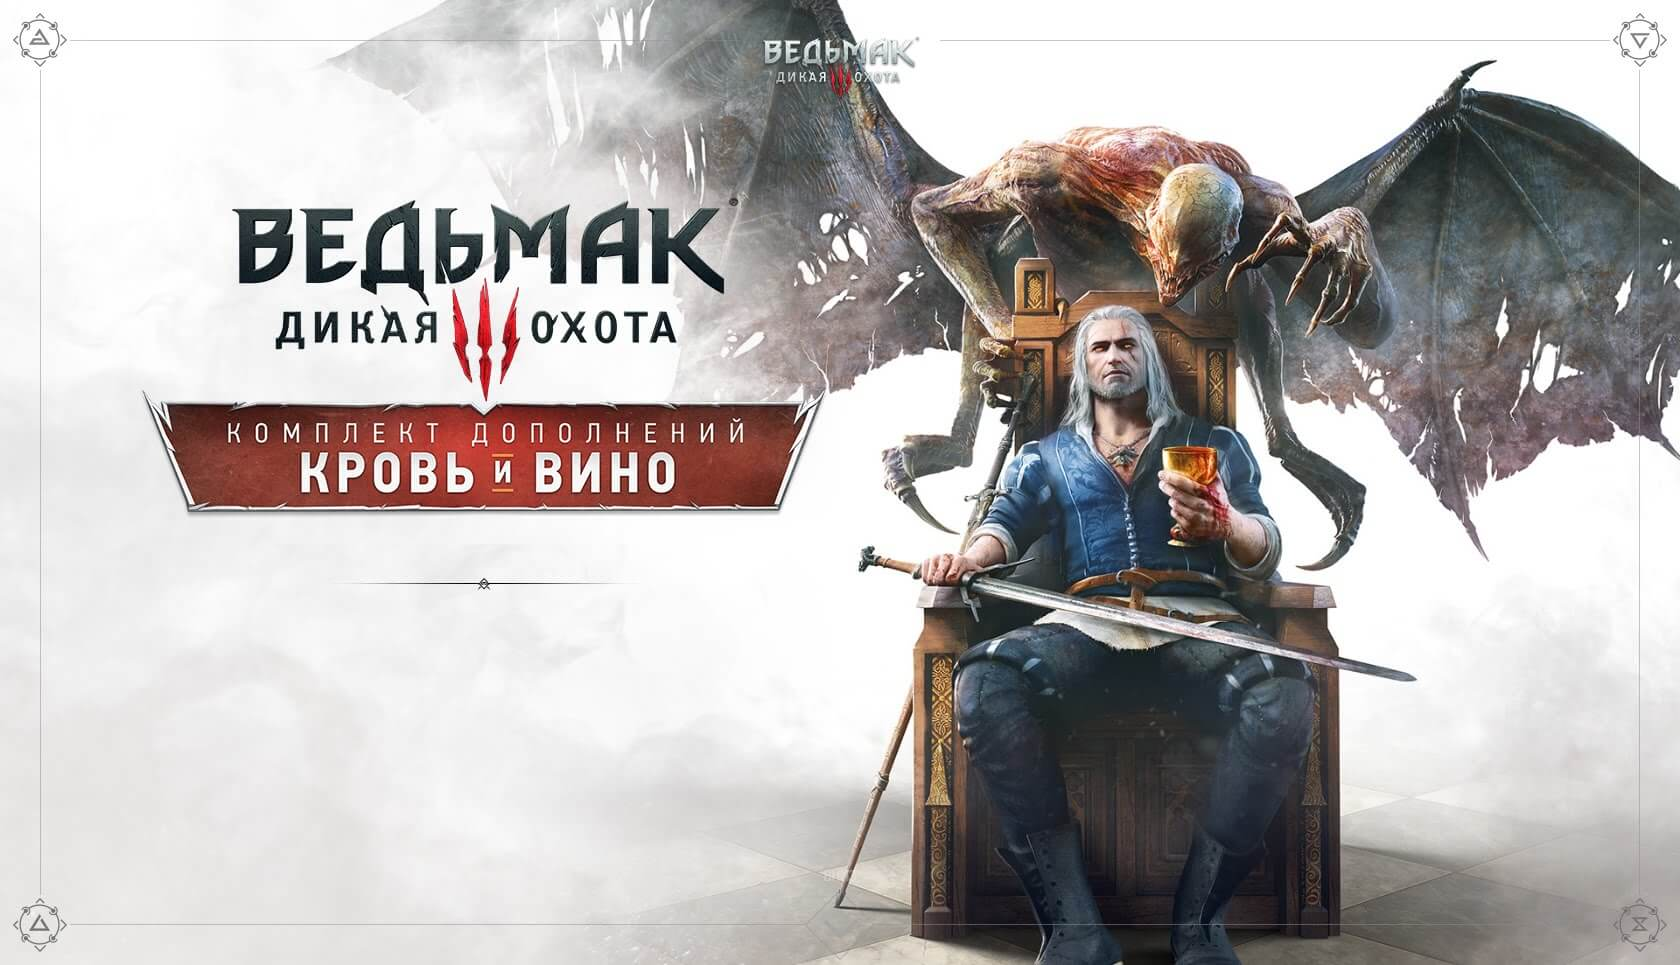 How to install witcher 3 dlc steam download